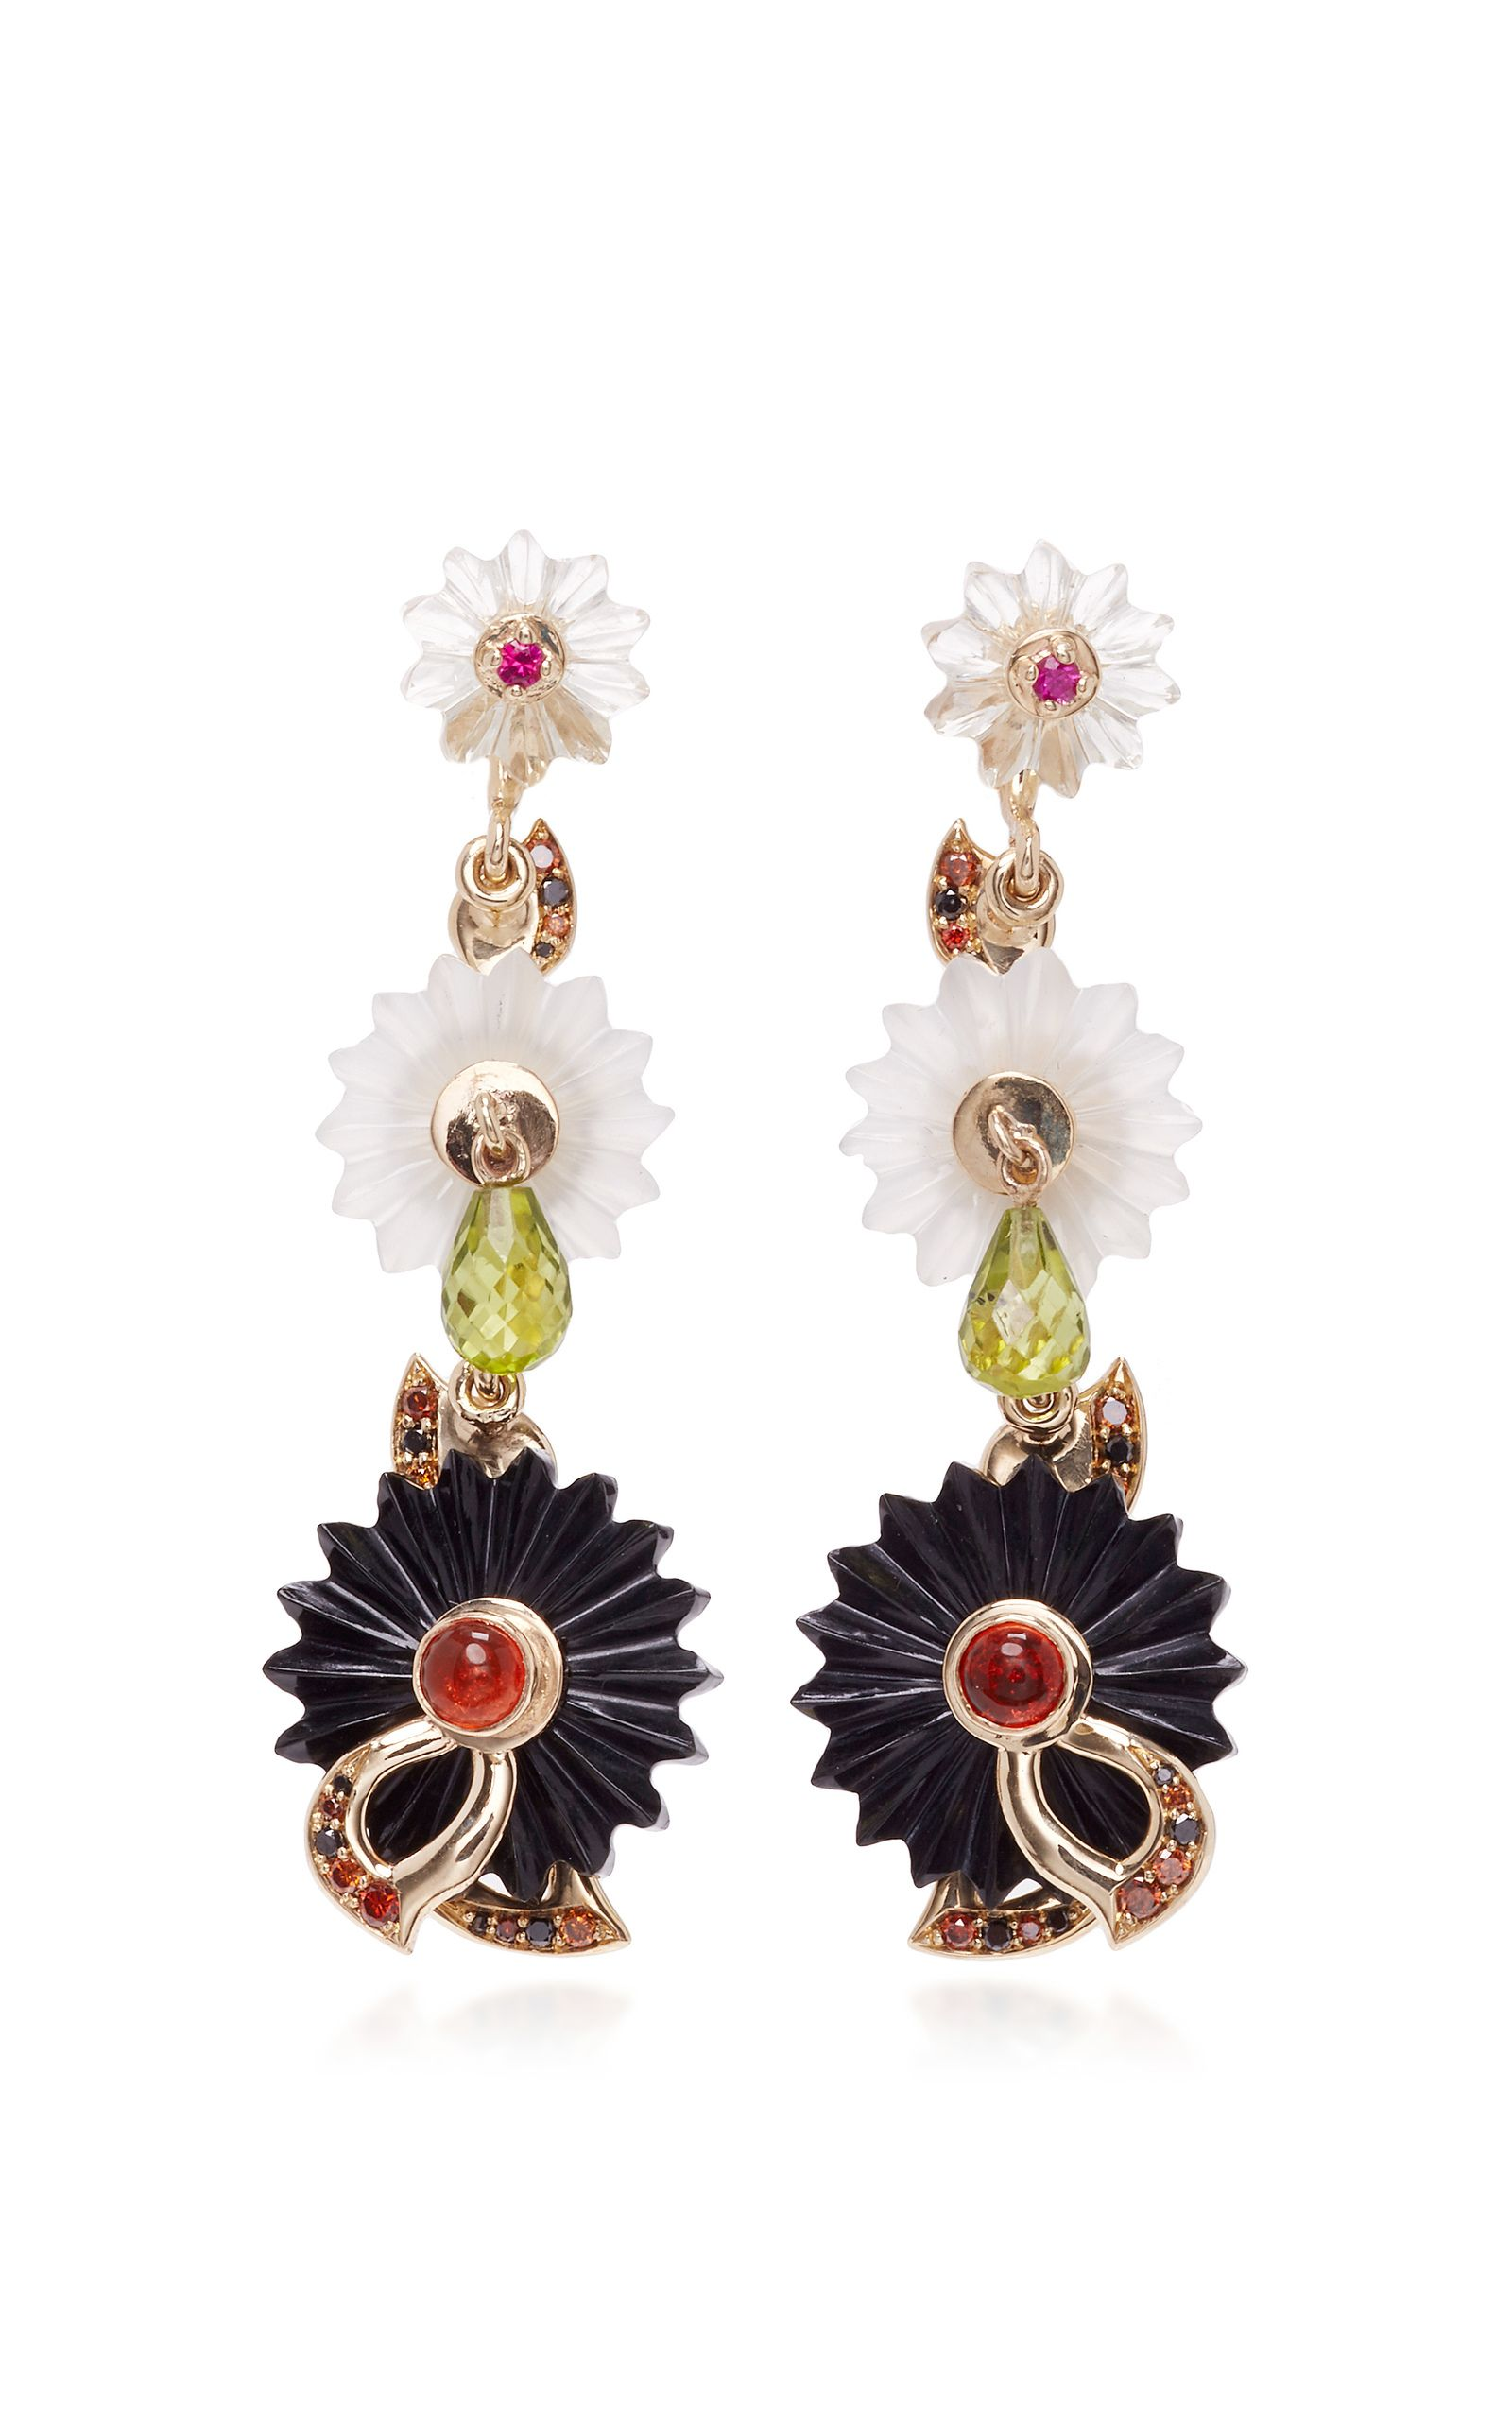 july stud earring architecture popular rio deandavidsonus drop watch earrings collection collections tagged